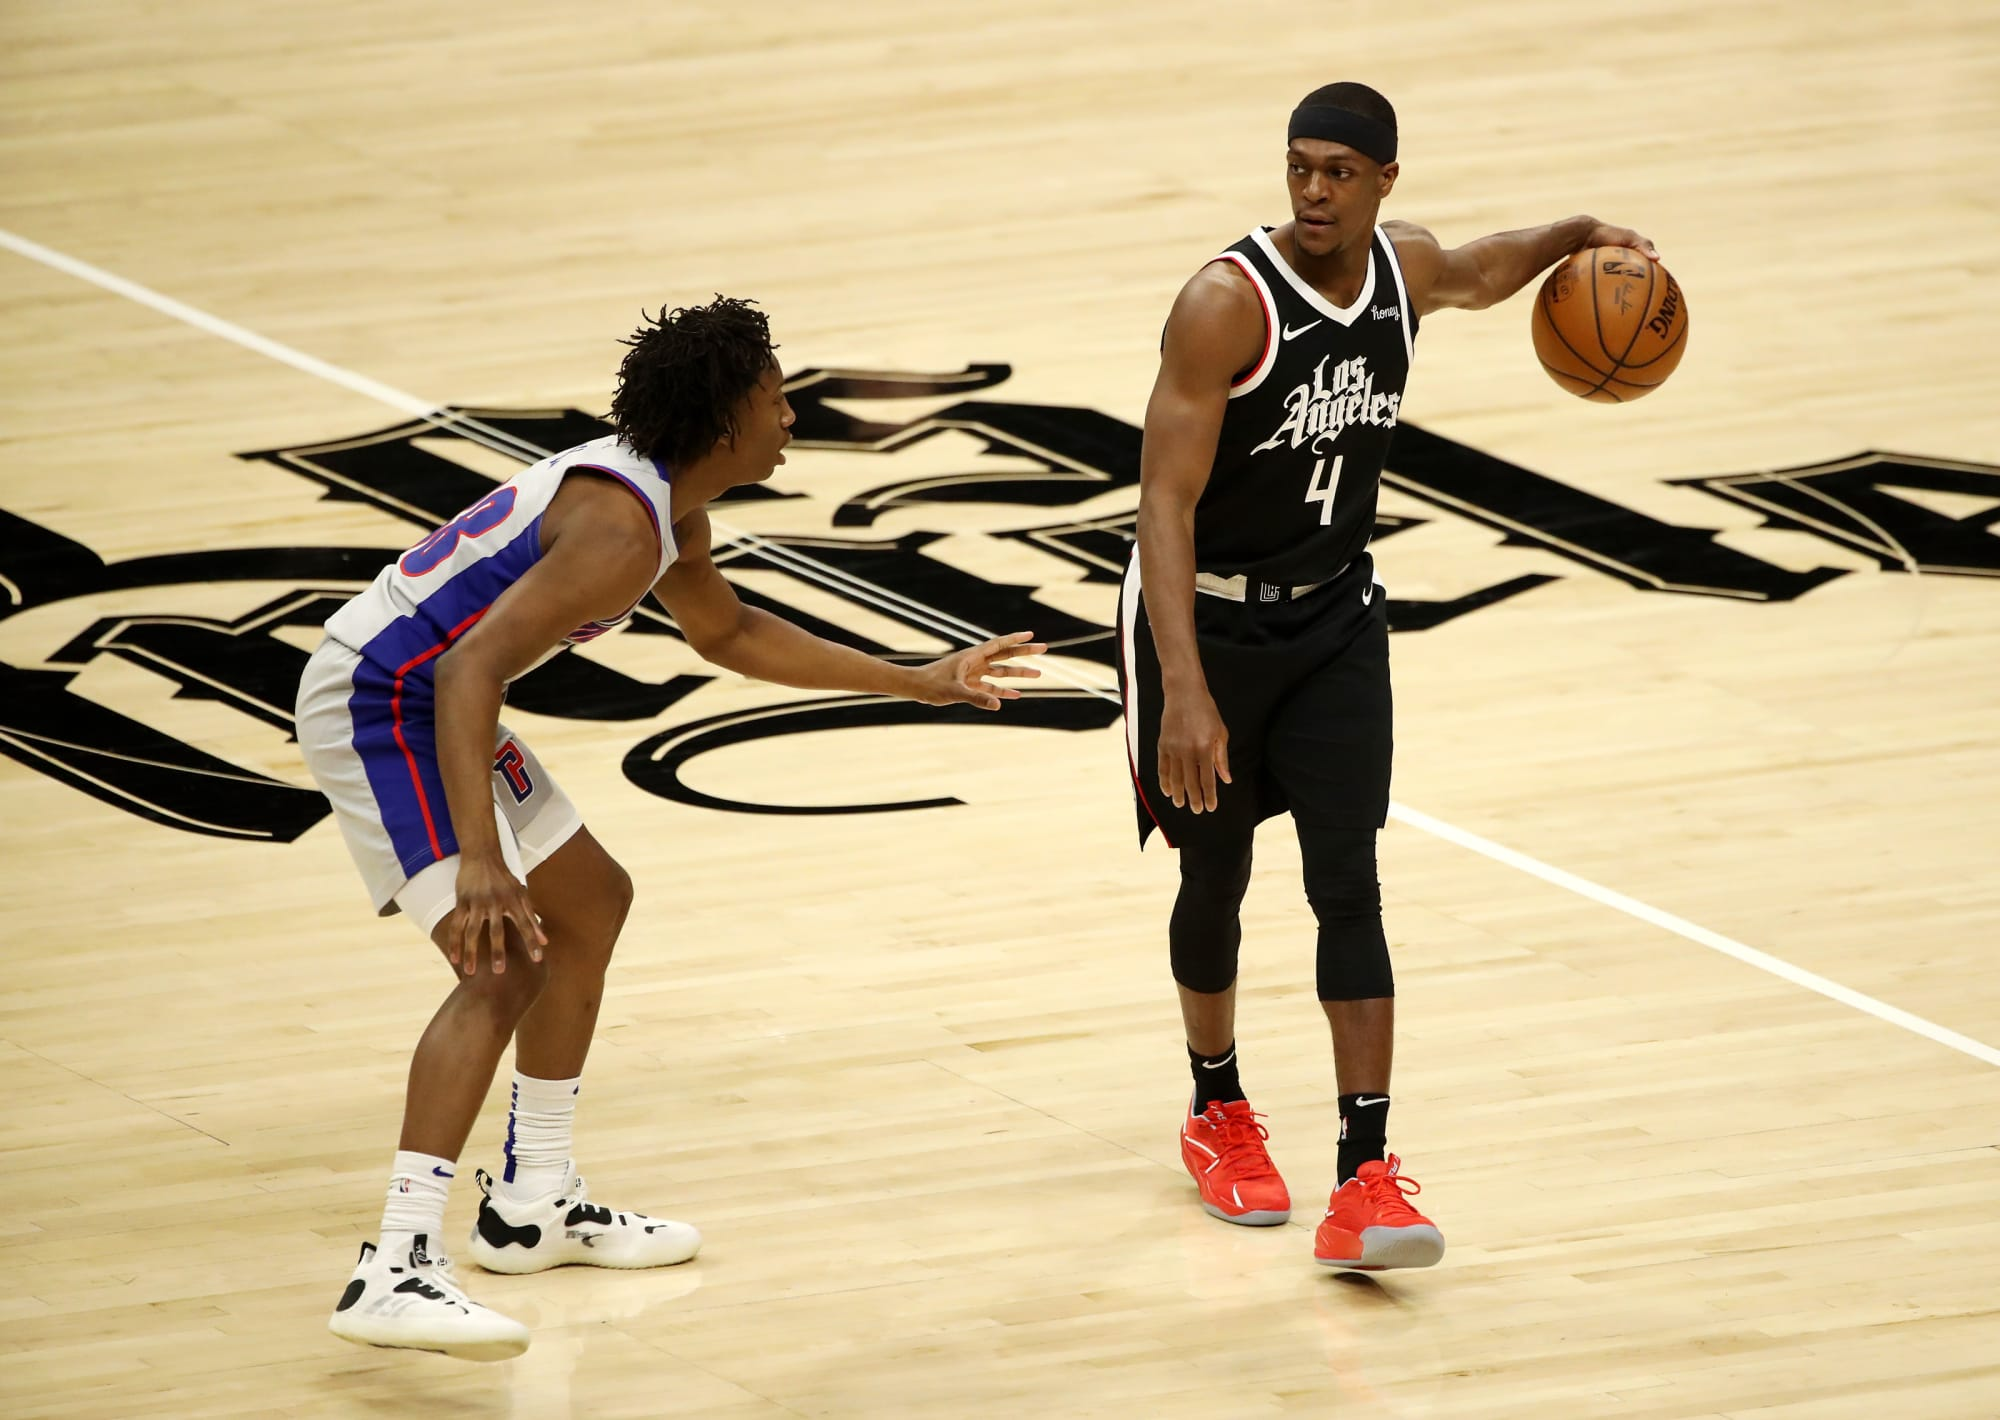 LA Clippers: Rajon Rondo is Proving Doubters Wrong So Far